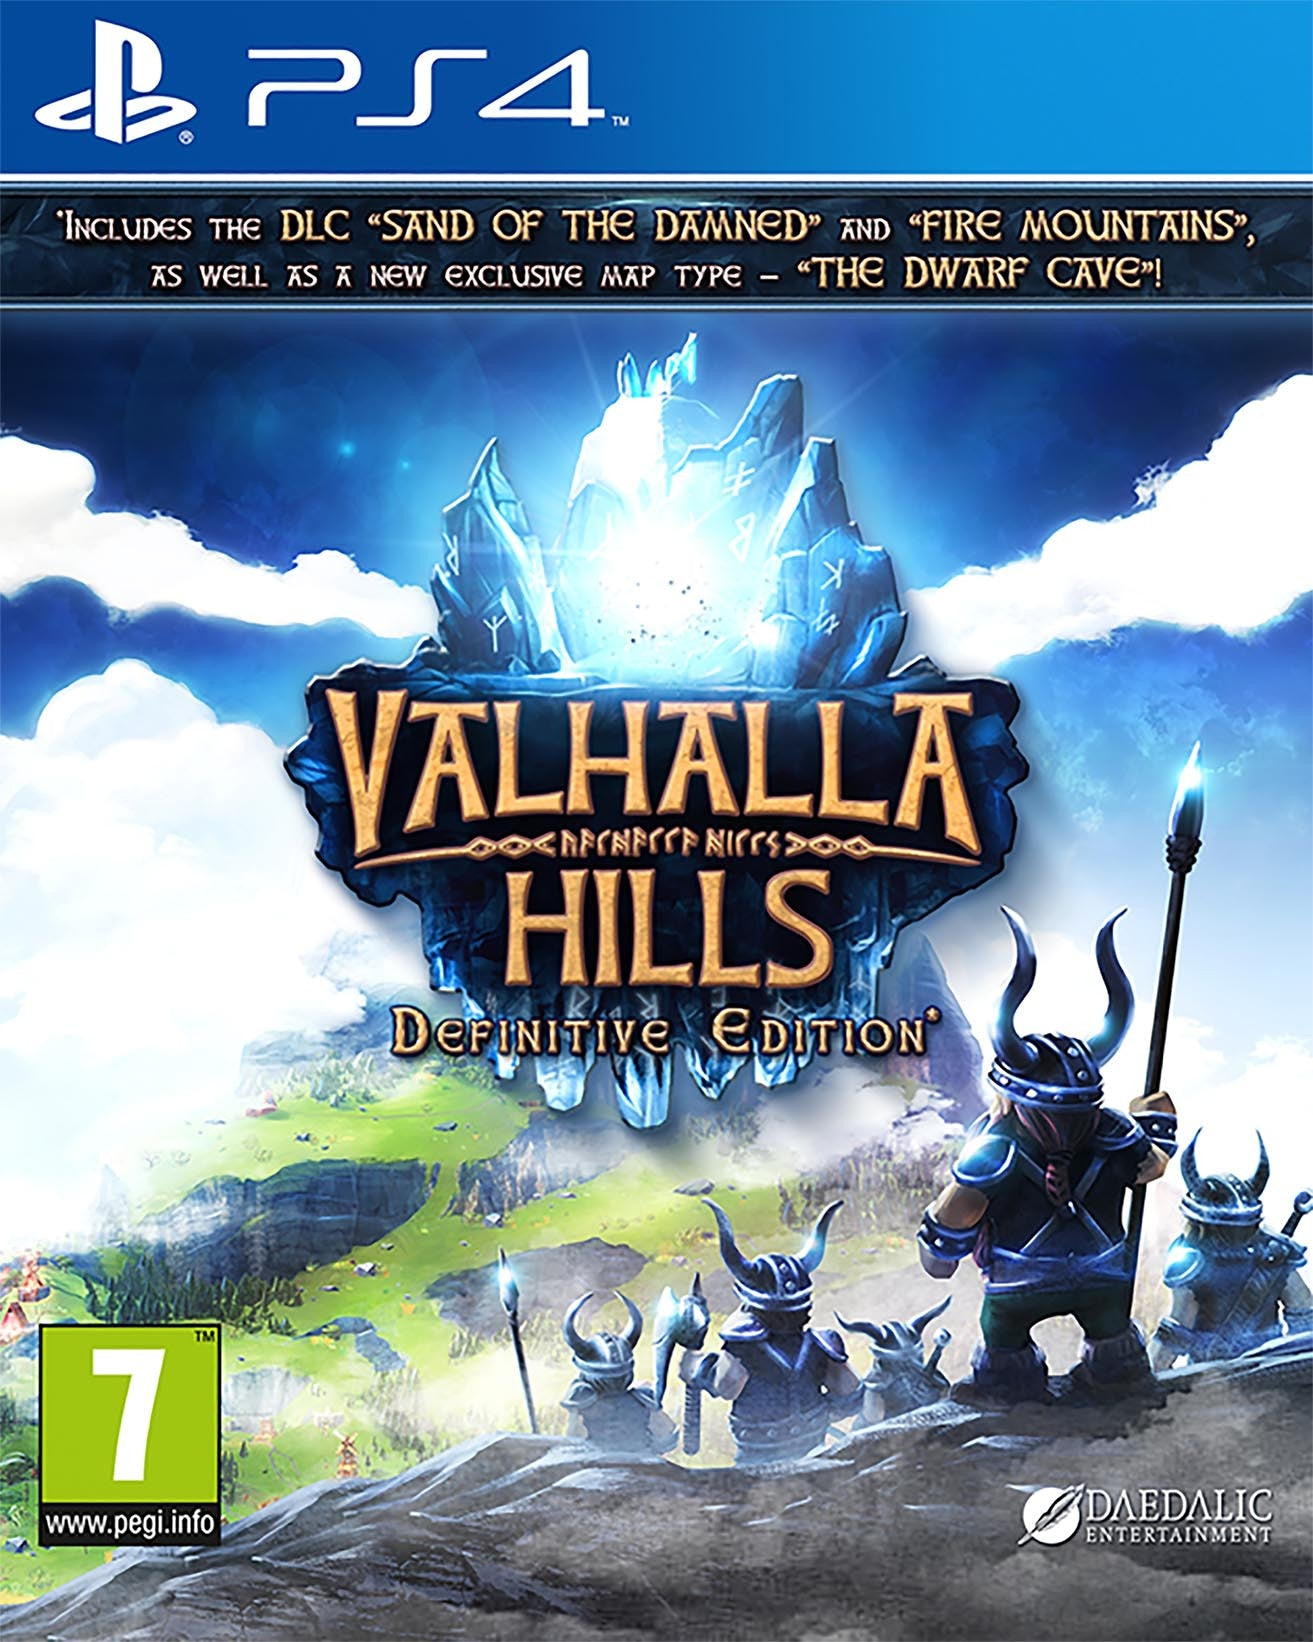 Valhalla Hills Definitive Edition - PS4 - Video Games by Kalypso Media The Chelsea Gamer